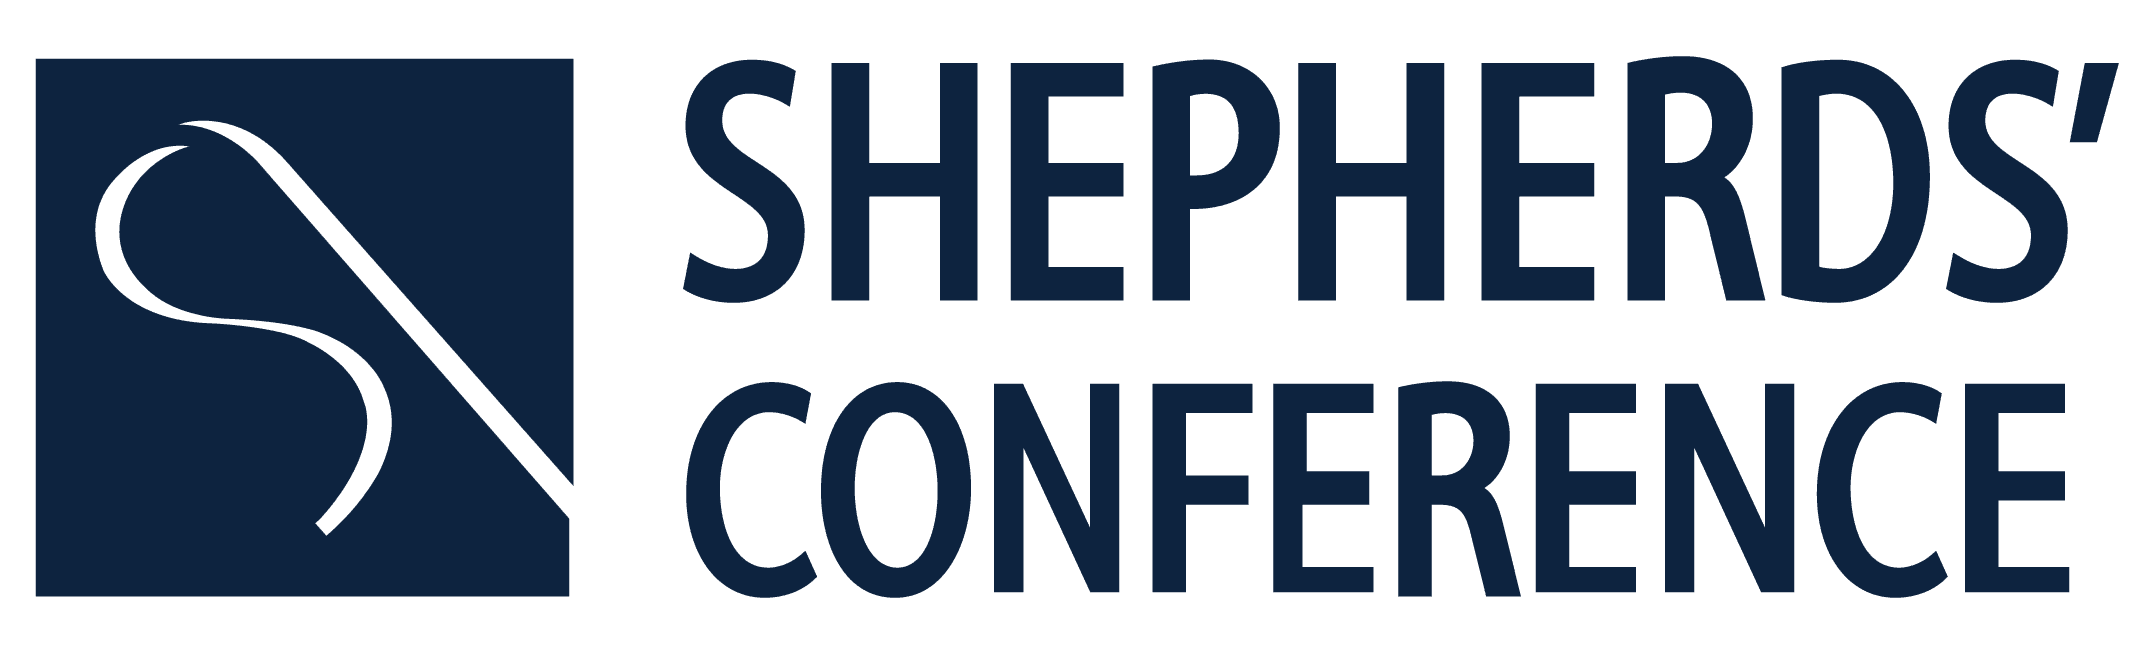 Shepherd's Conference